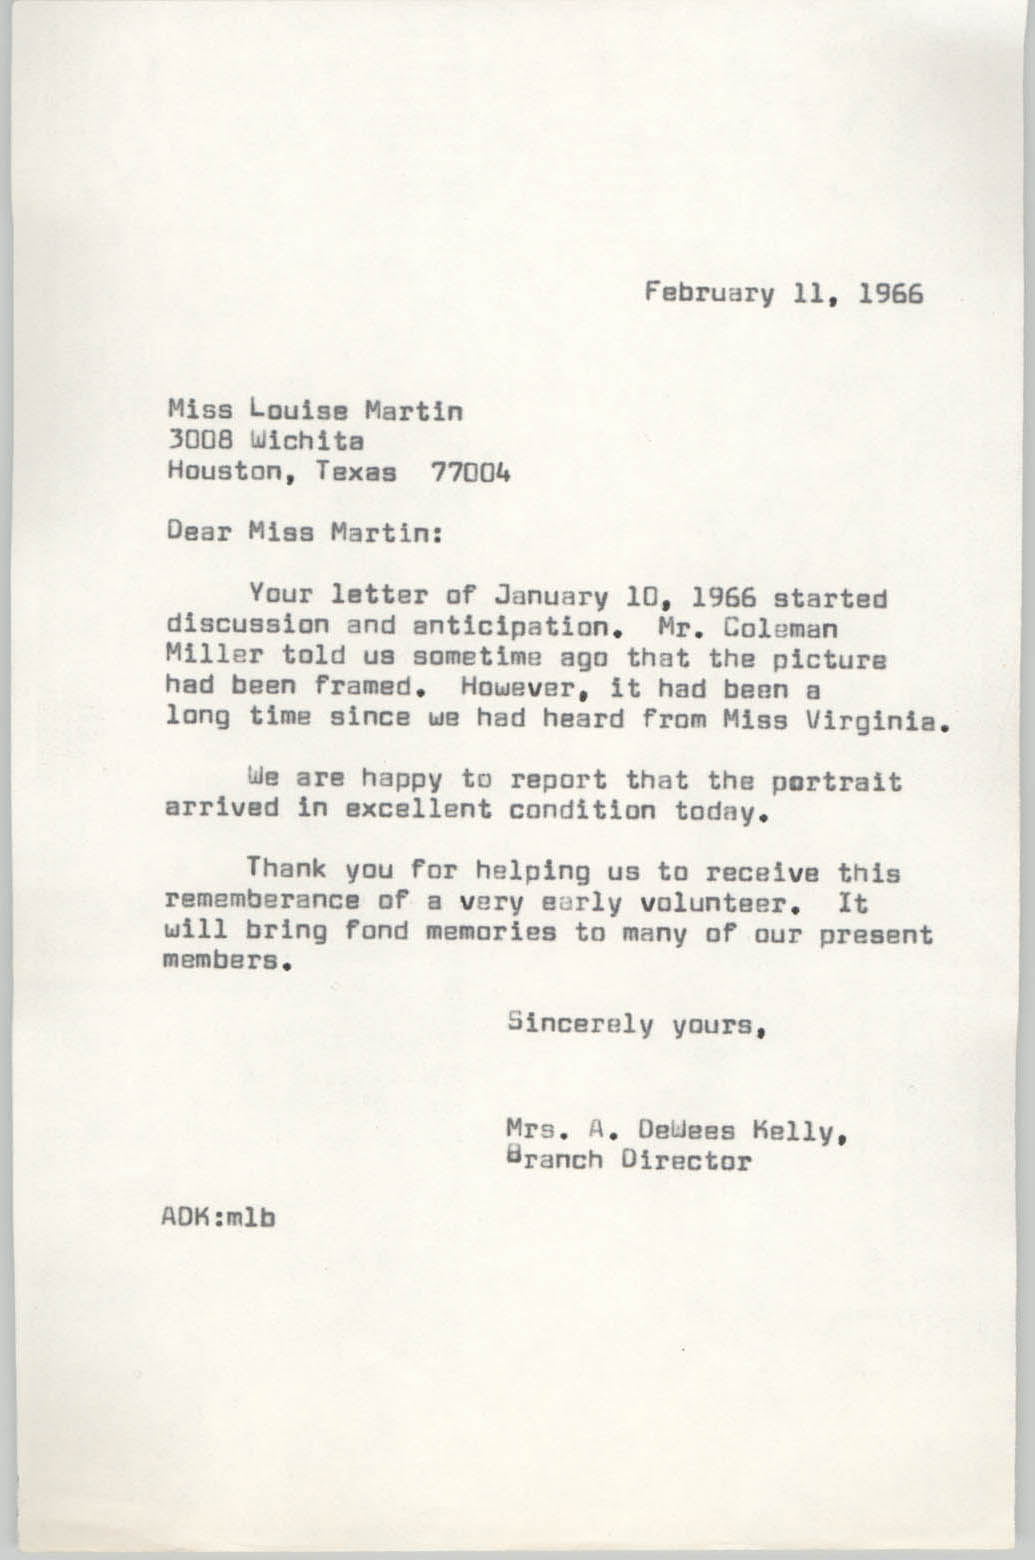 Letter from Anna D. Kelly to Louise Martin, February 11, 1966